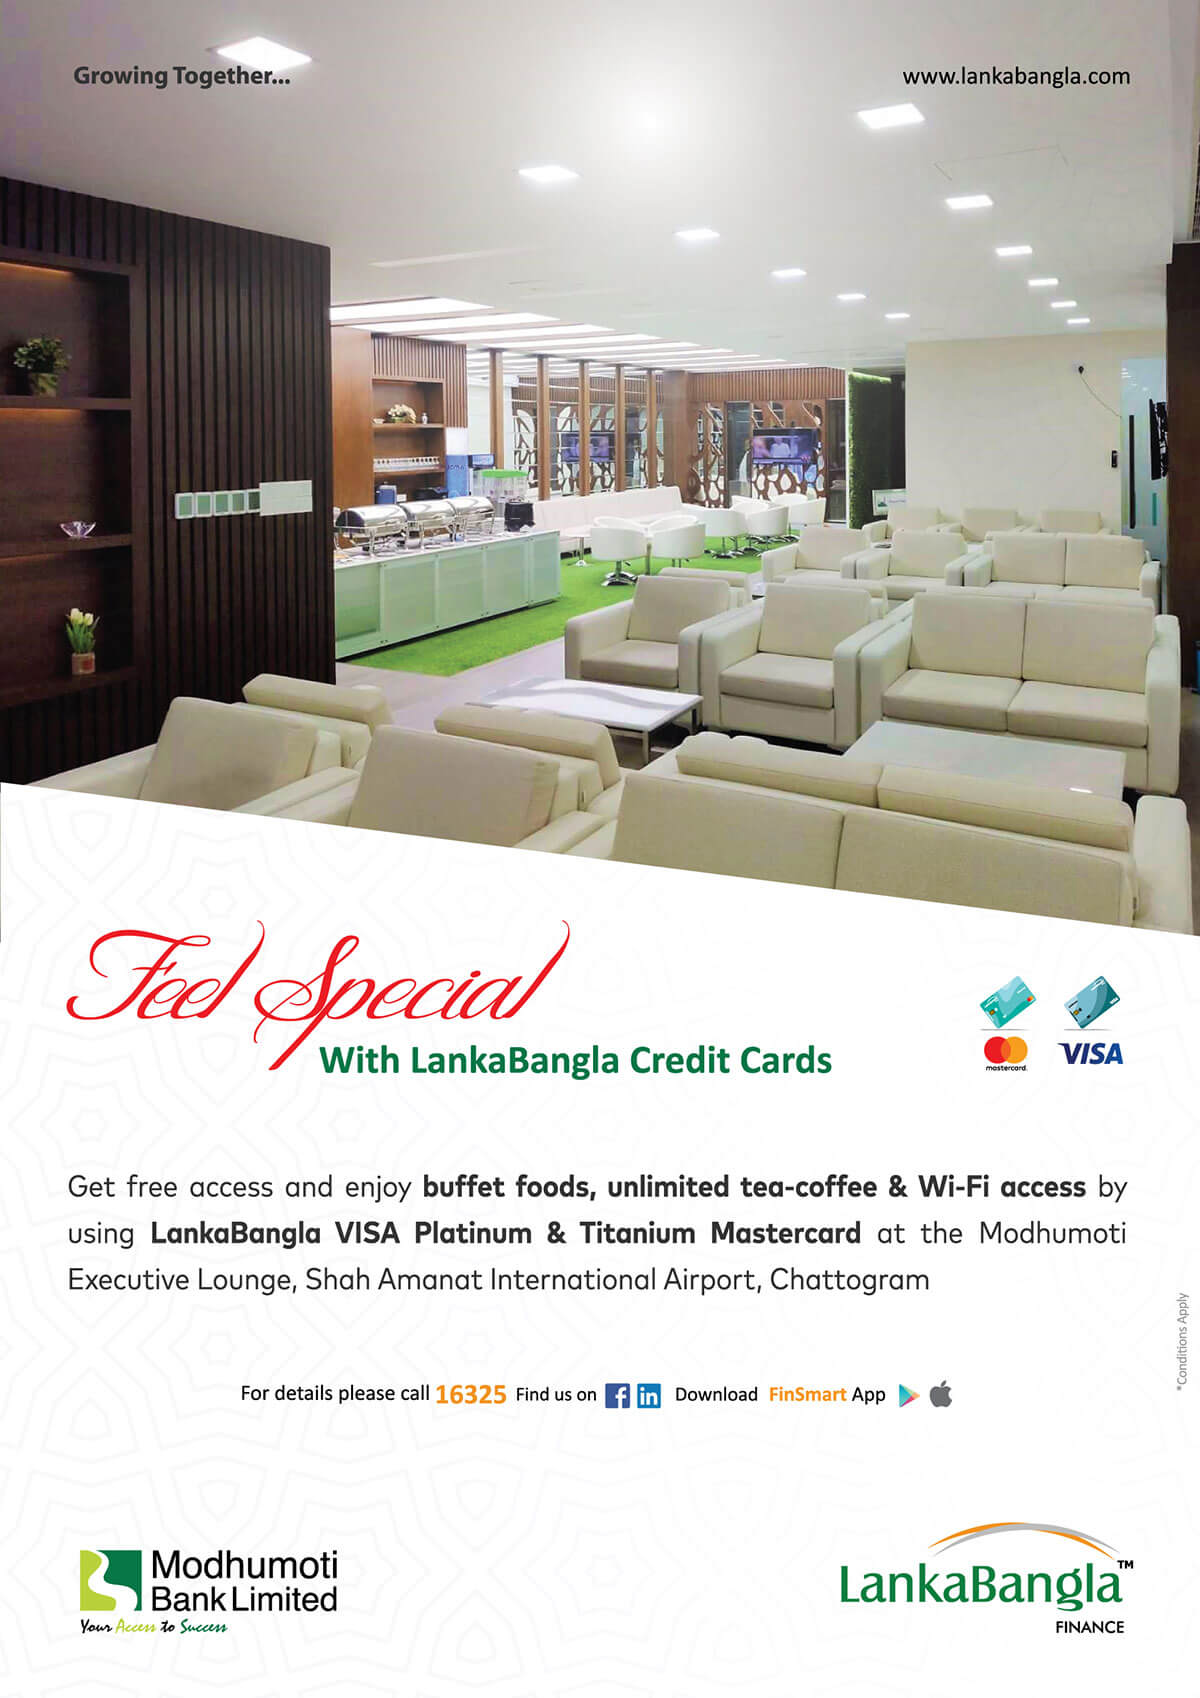 Feel Special With LankaBangla Credit Cards